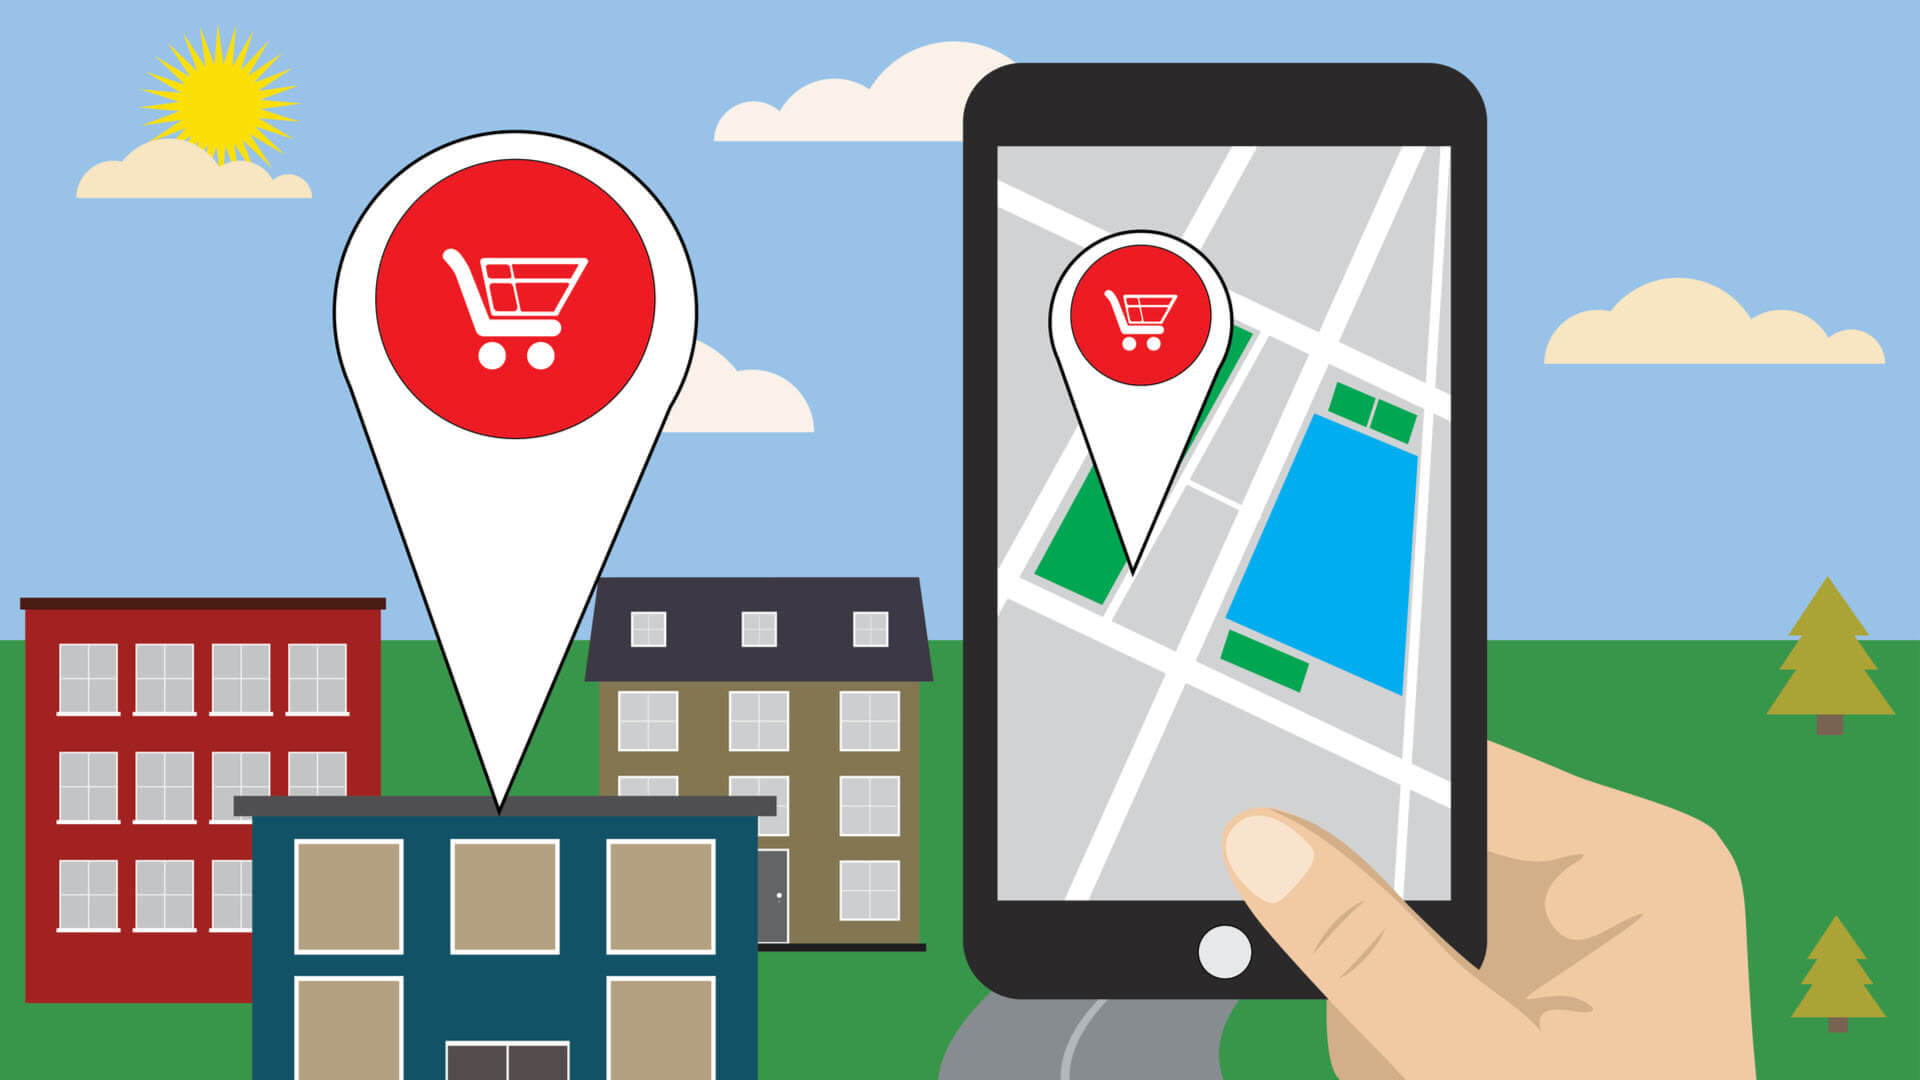 Businesses can now sign up to add booking buttons to their Google local results